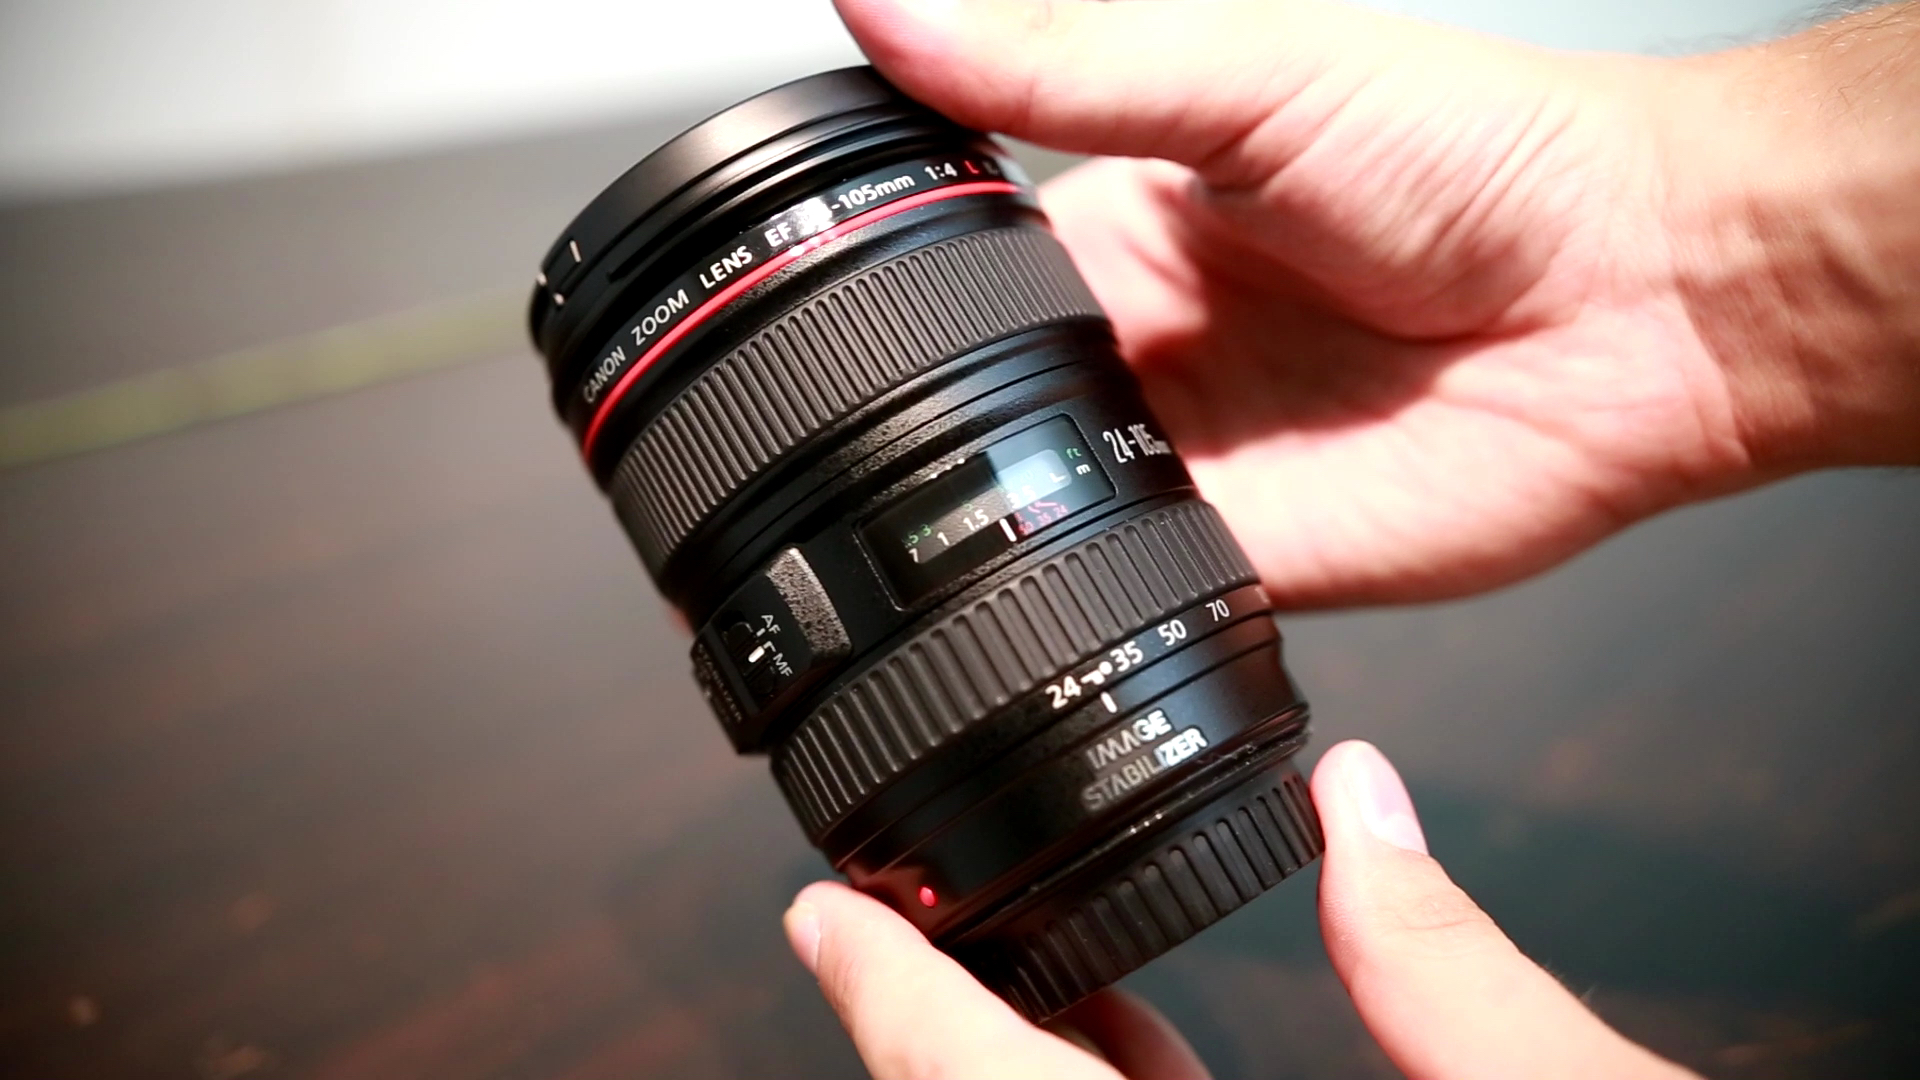 A review of Canons 24-105mm f4 L